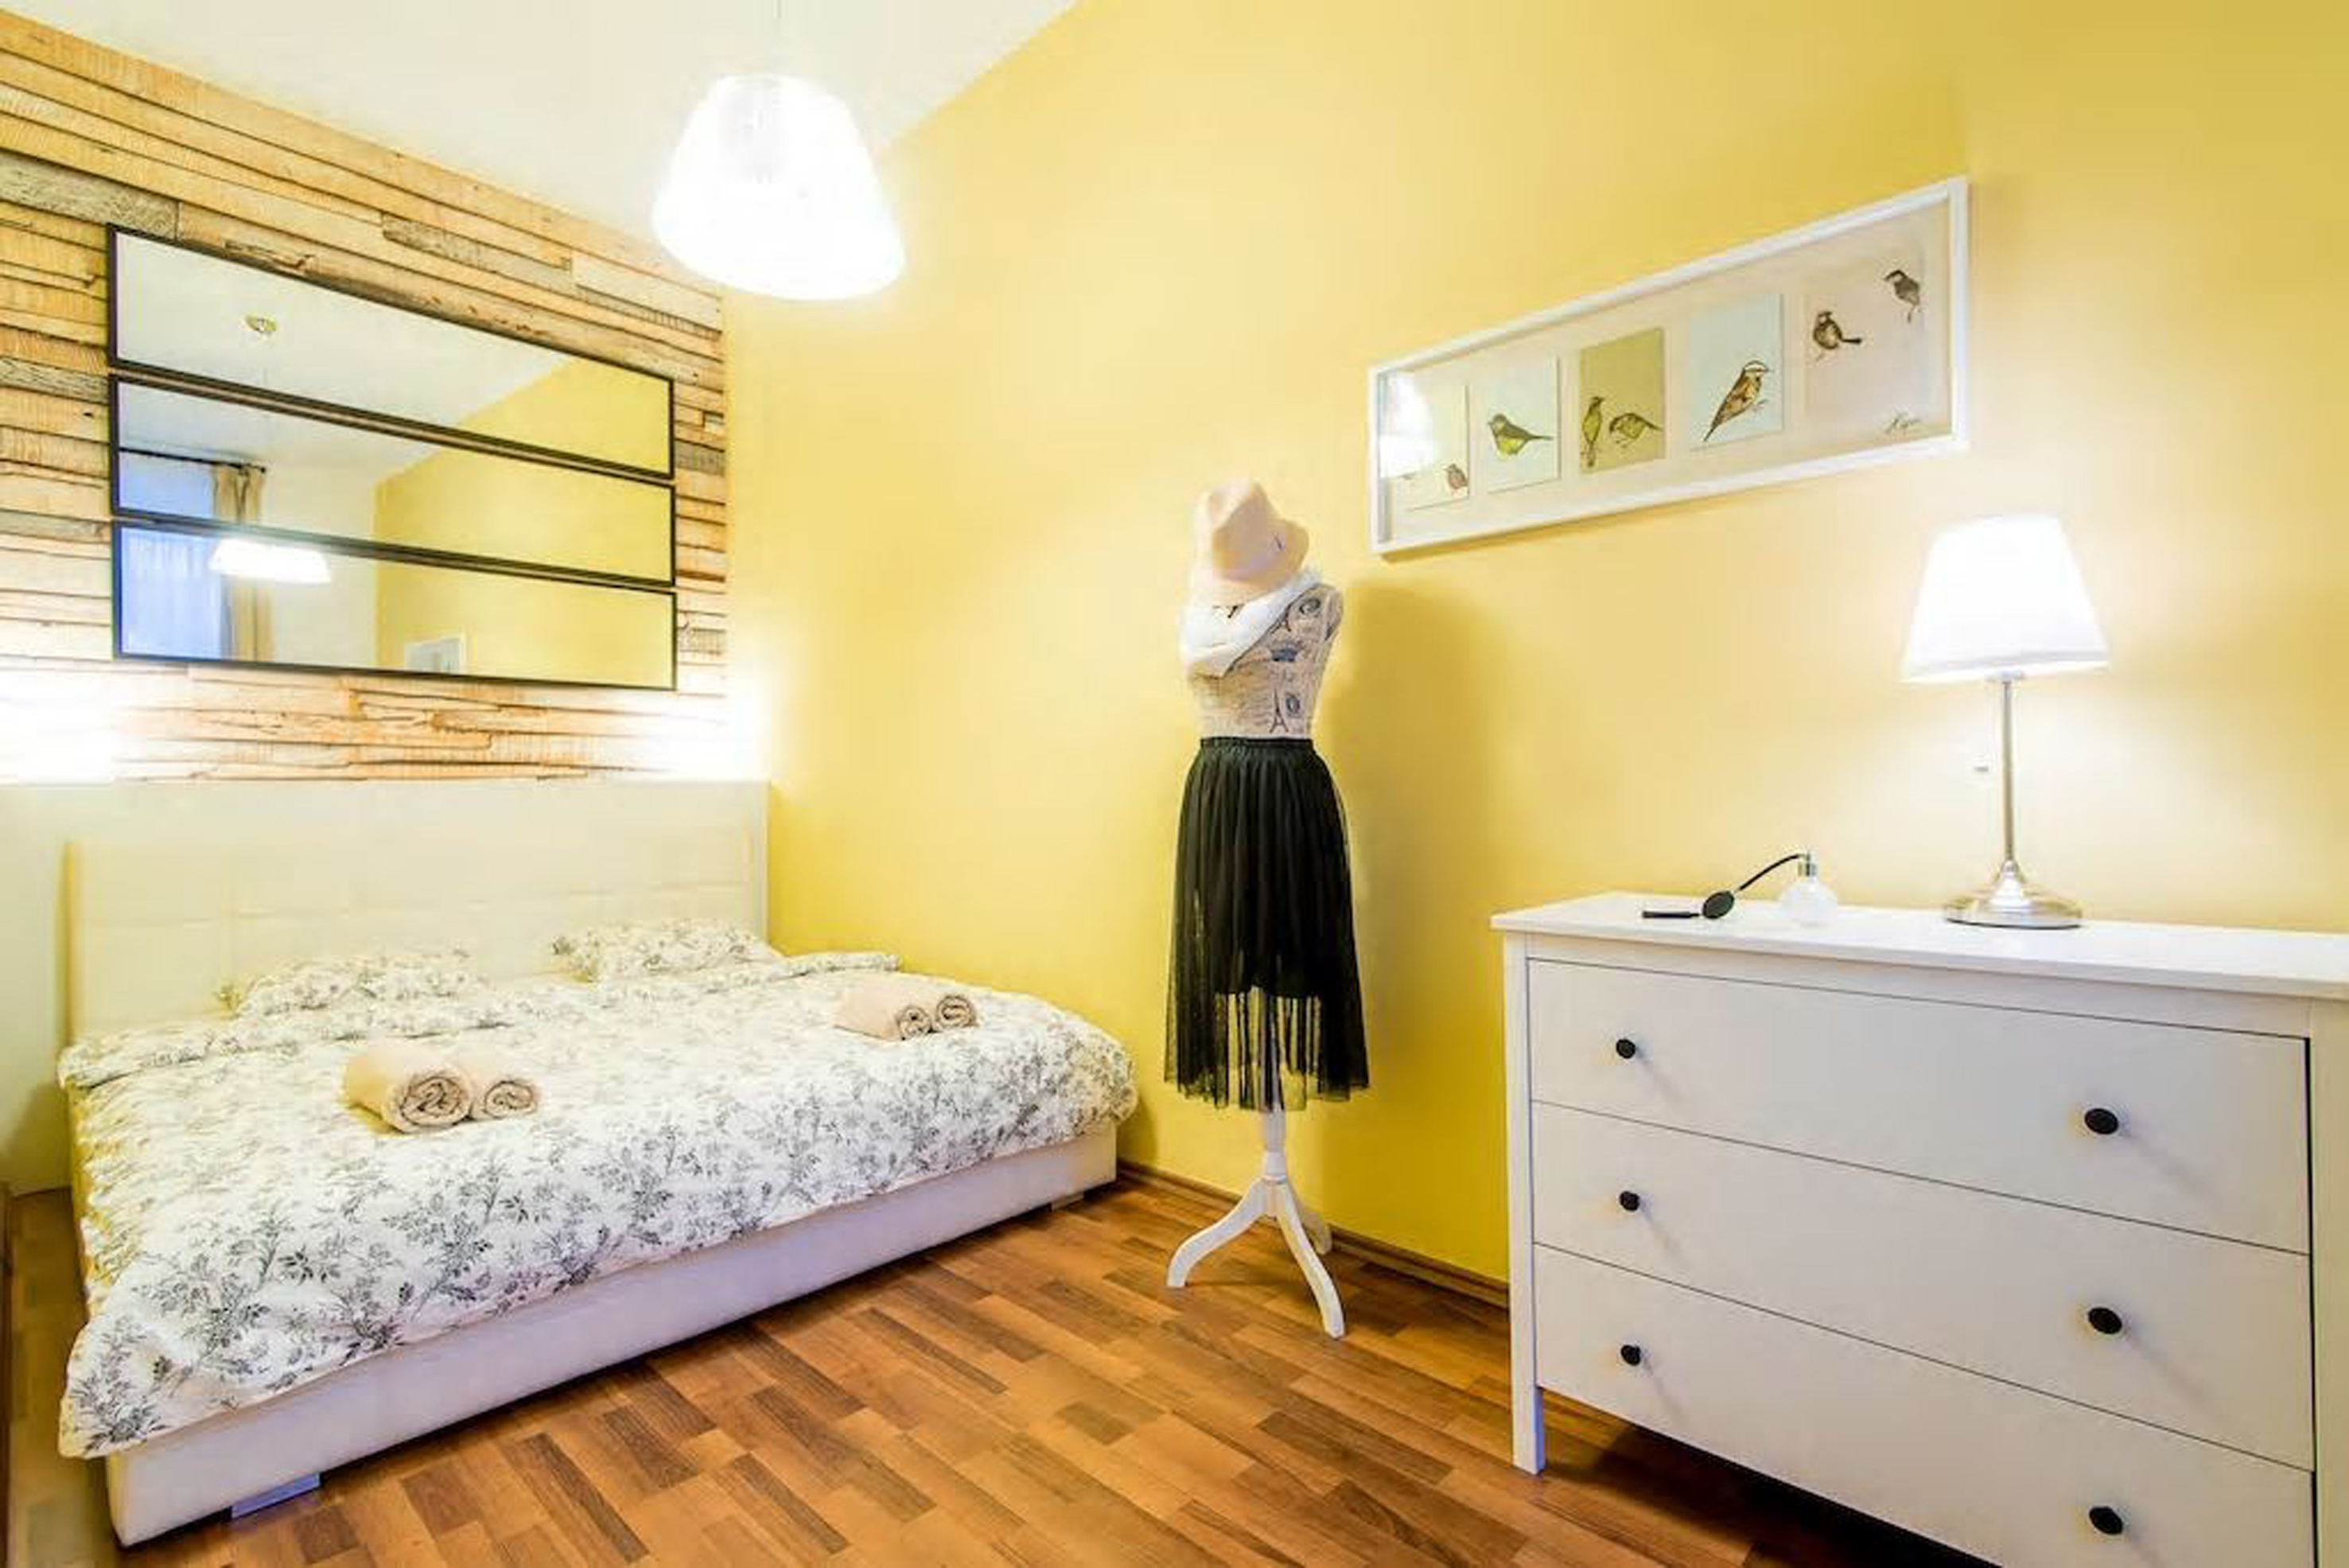 airbnb budapest